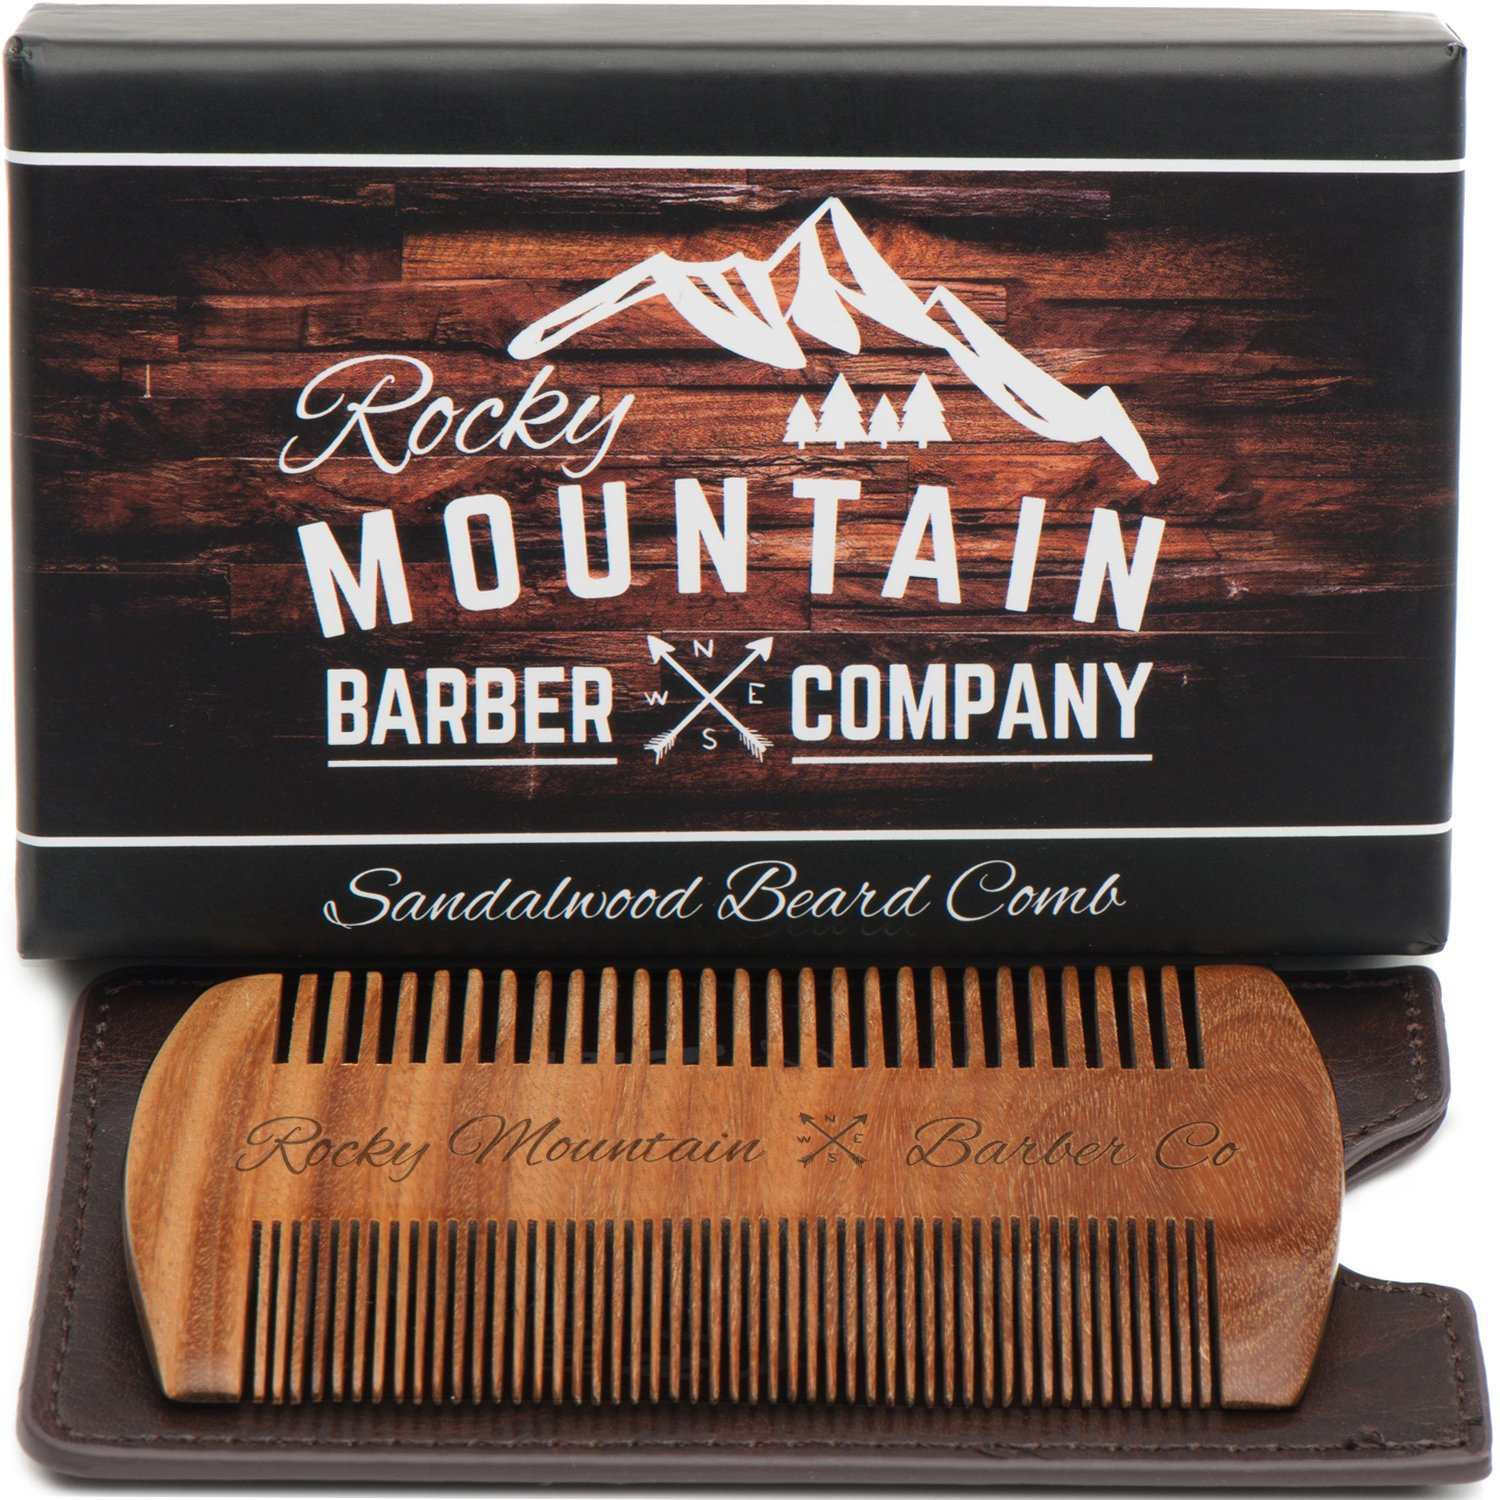 Beard Comb - Natural Organic Sandal Wood for Hair - Scented Fragrance Smell with Anti-Static & No Snag, Handmade Fine Tooth Brush Best for Beard & Moustache Packaged in Premium Giftbox Rocky Mountain Barber Company BC-50